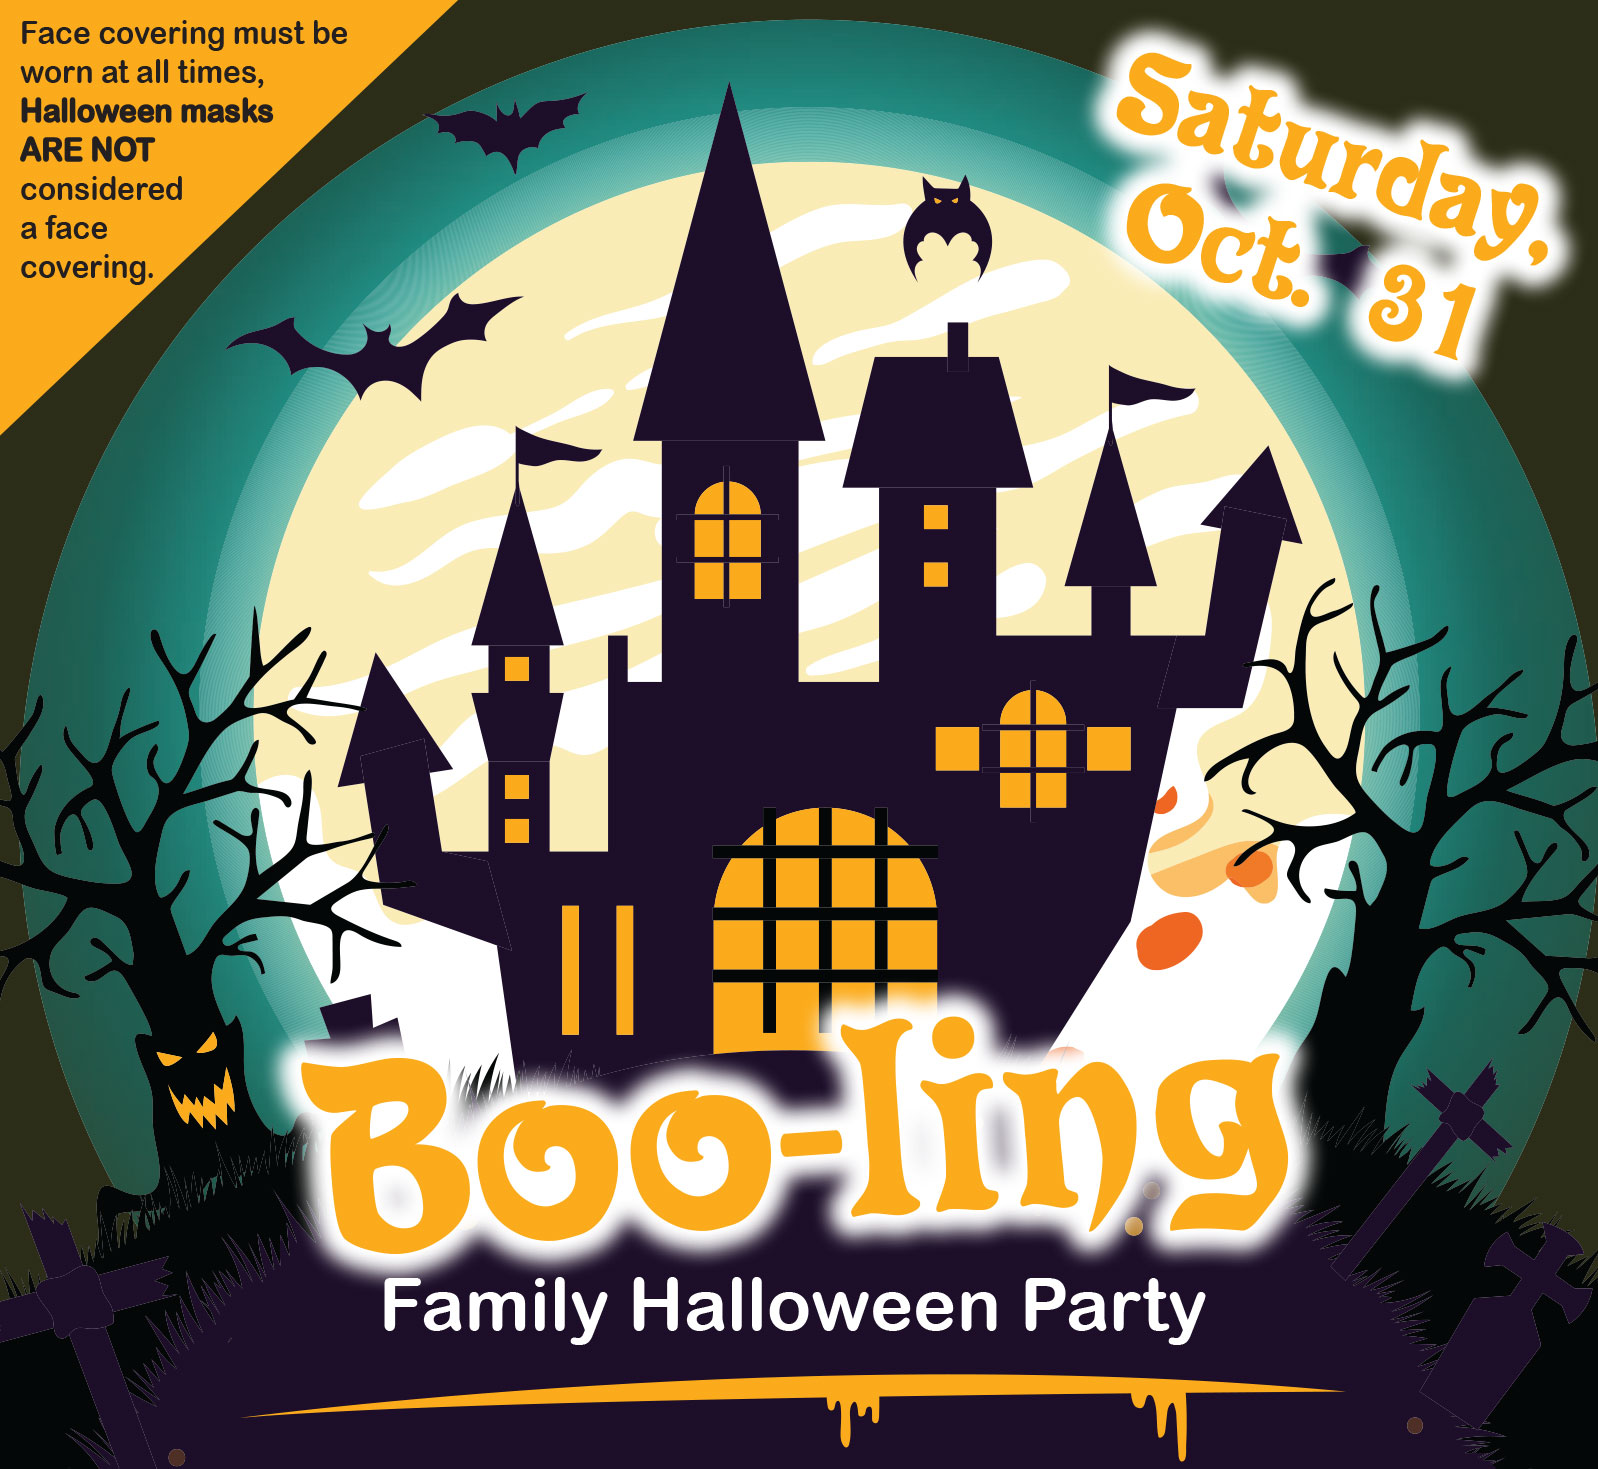 BOO-LING FAMILY HALLOWEEN PARTY